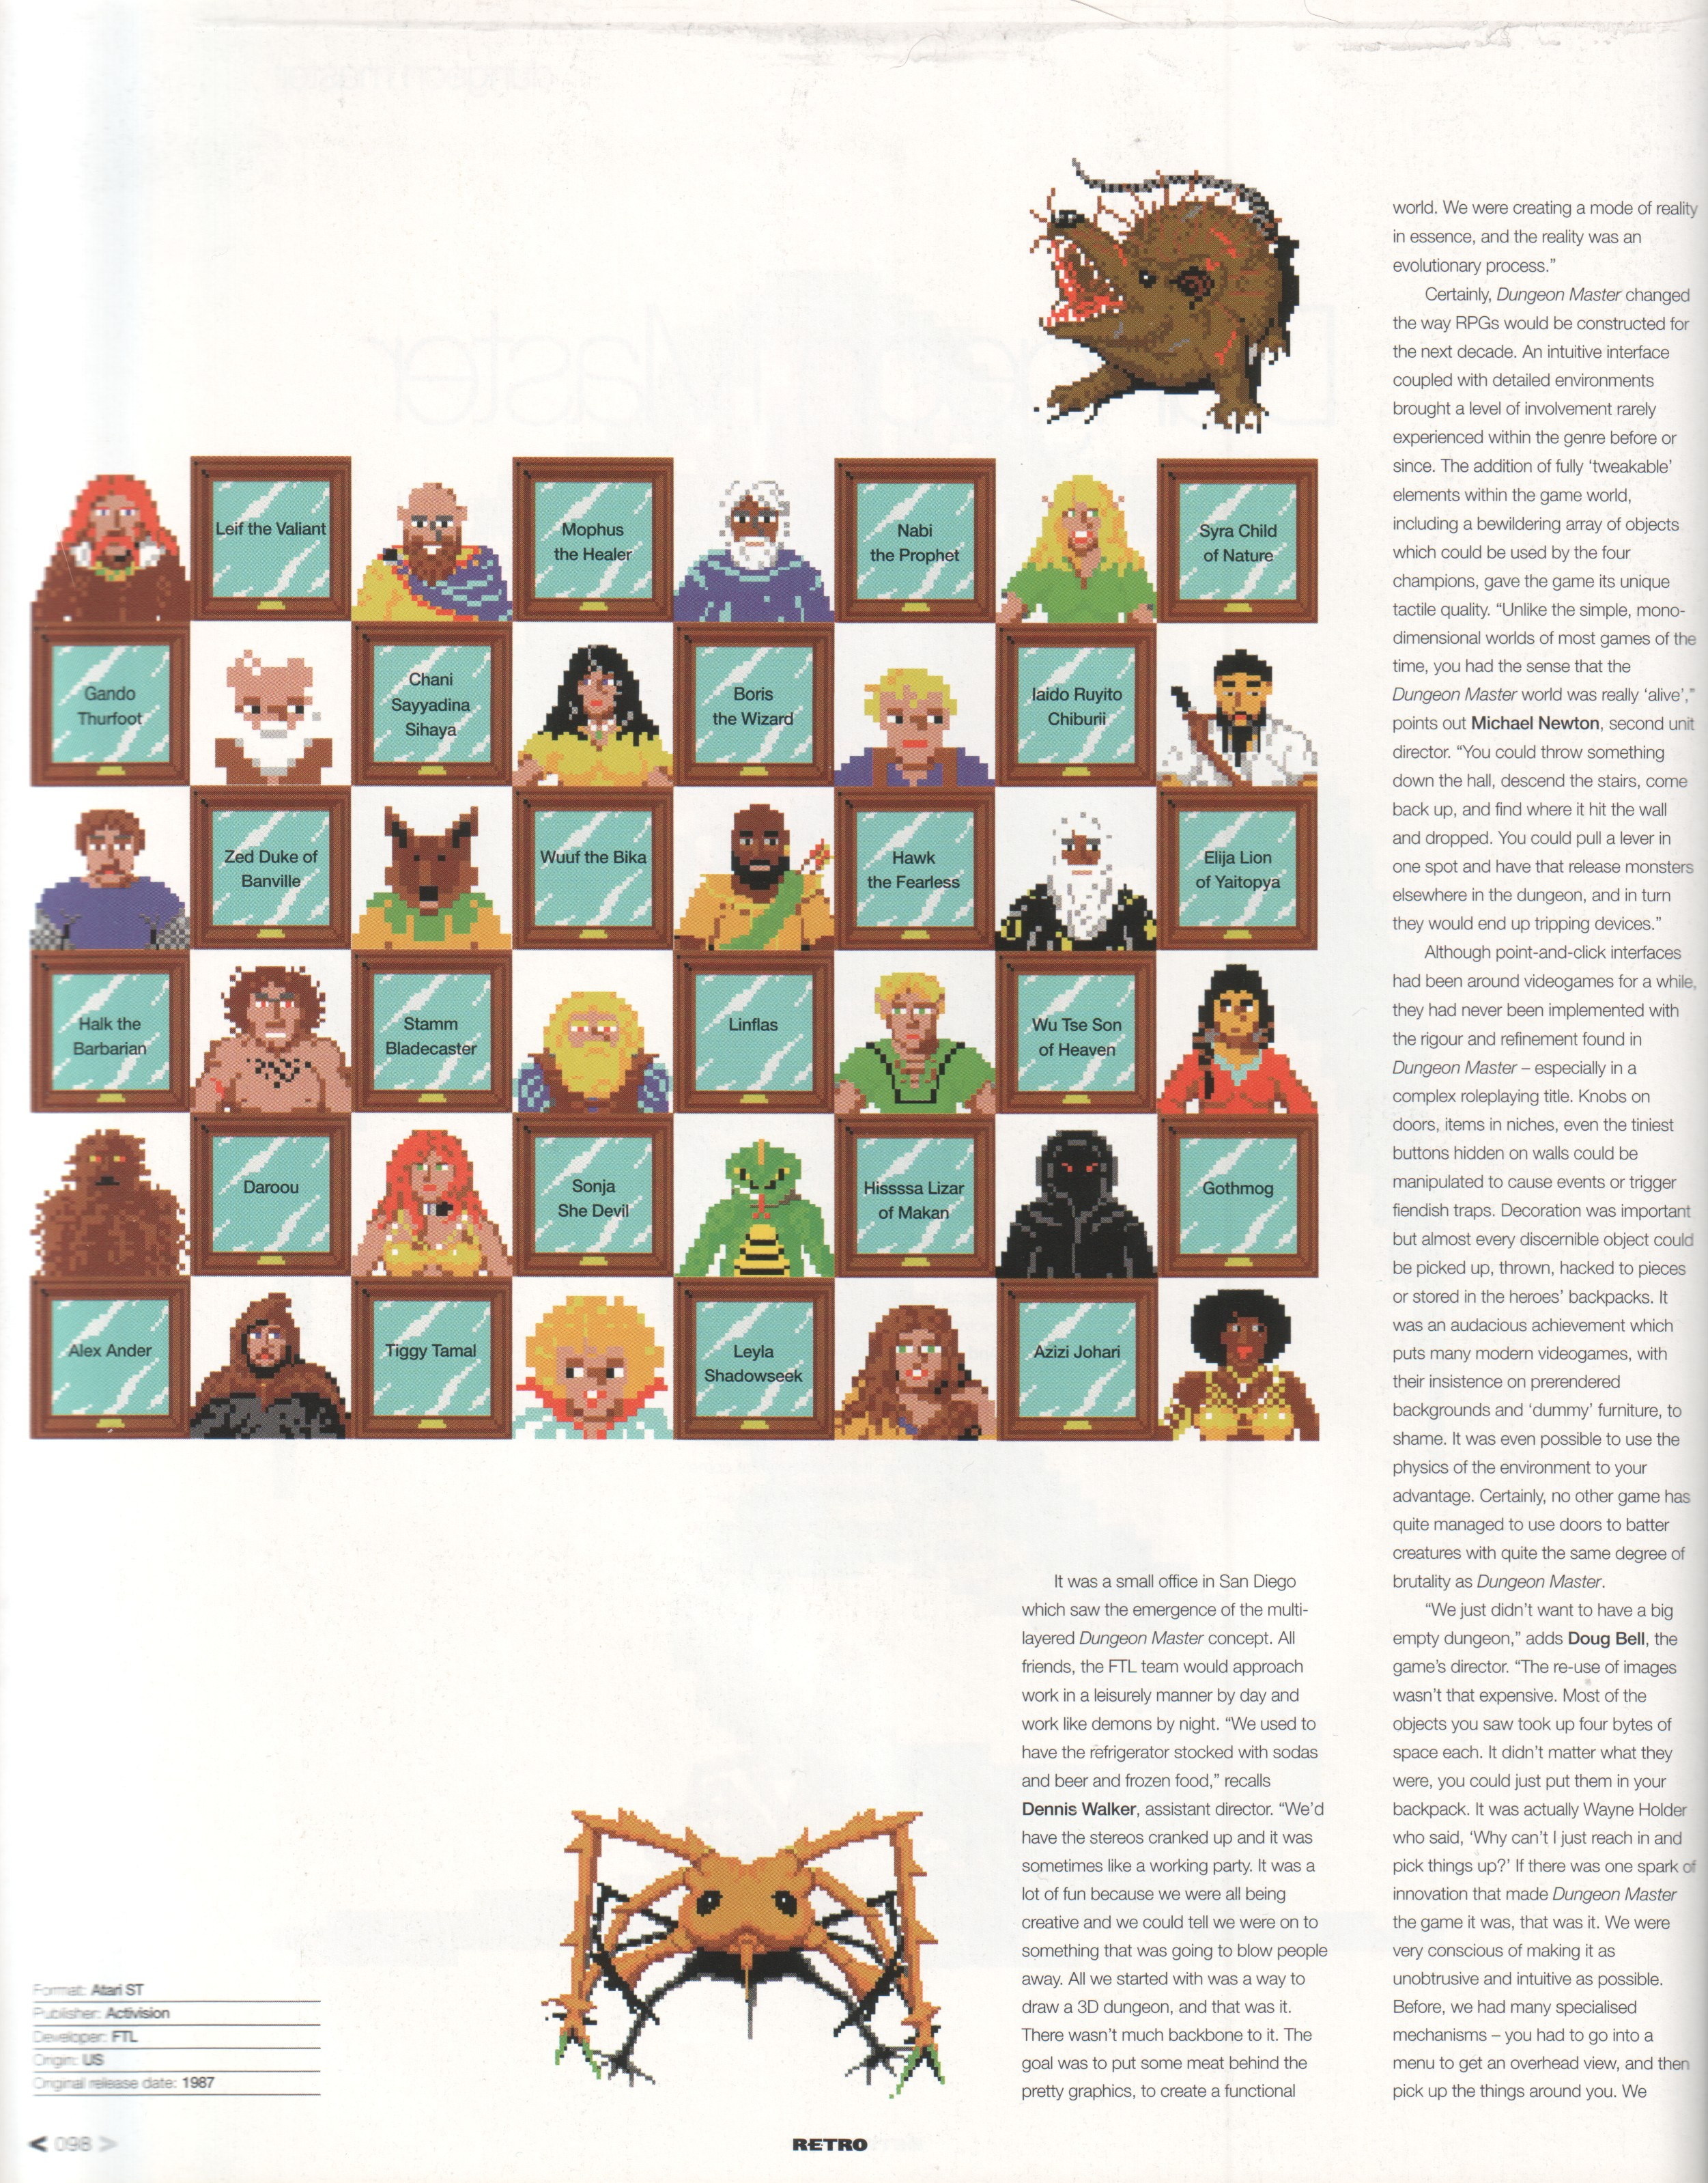 Dungeon Master Article published in British magazine 'Edge Presents Retro The Making Of Special', February 2003, Page 98